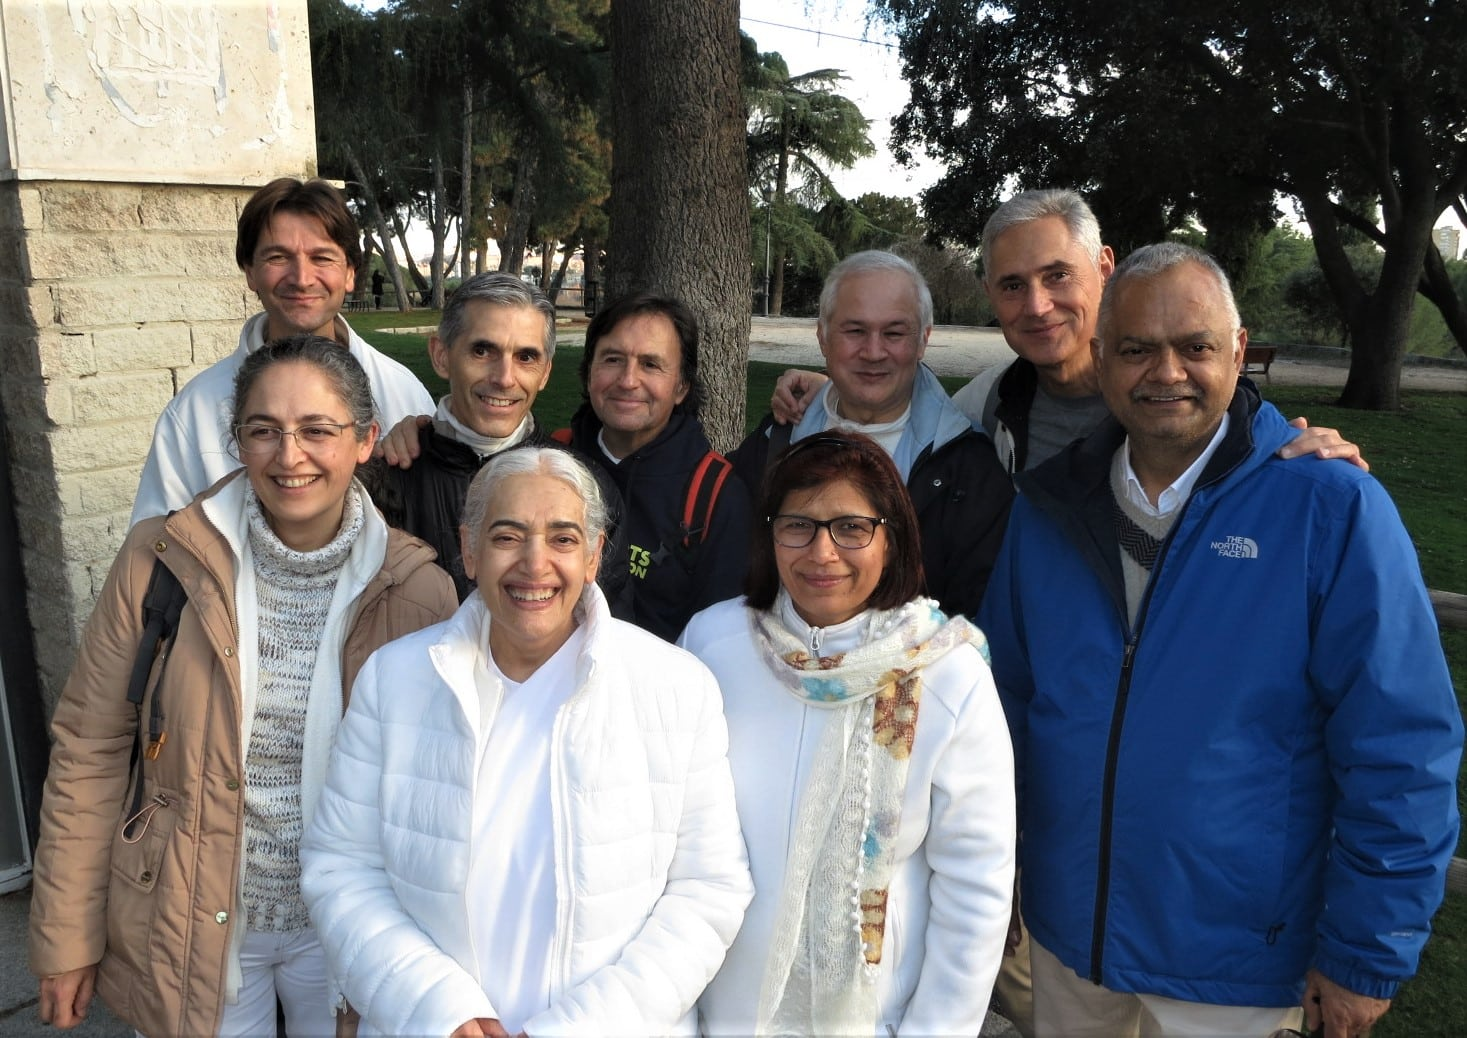 Back row from left: Juan, Seville – Jose Maria, Cantabria - Antonio, Bill and Henriques from Madrid –  Front row from left: Marta, Barcelona – Sister Jayanti – Urmil and Sanjay from Salou.